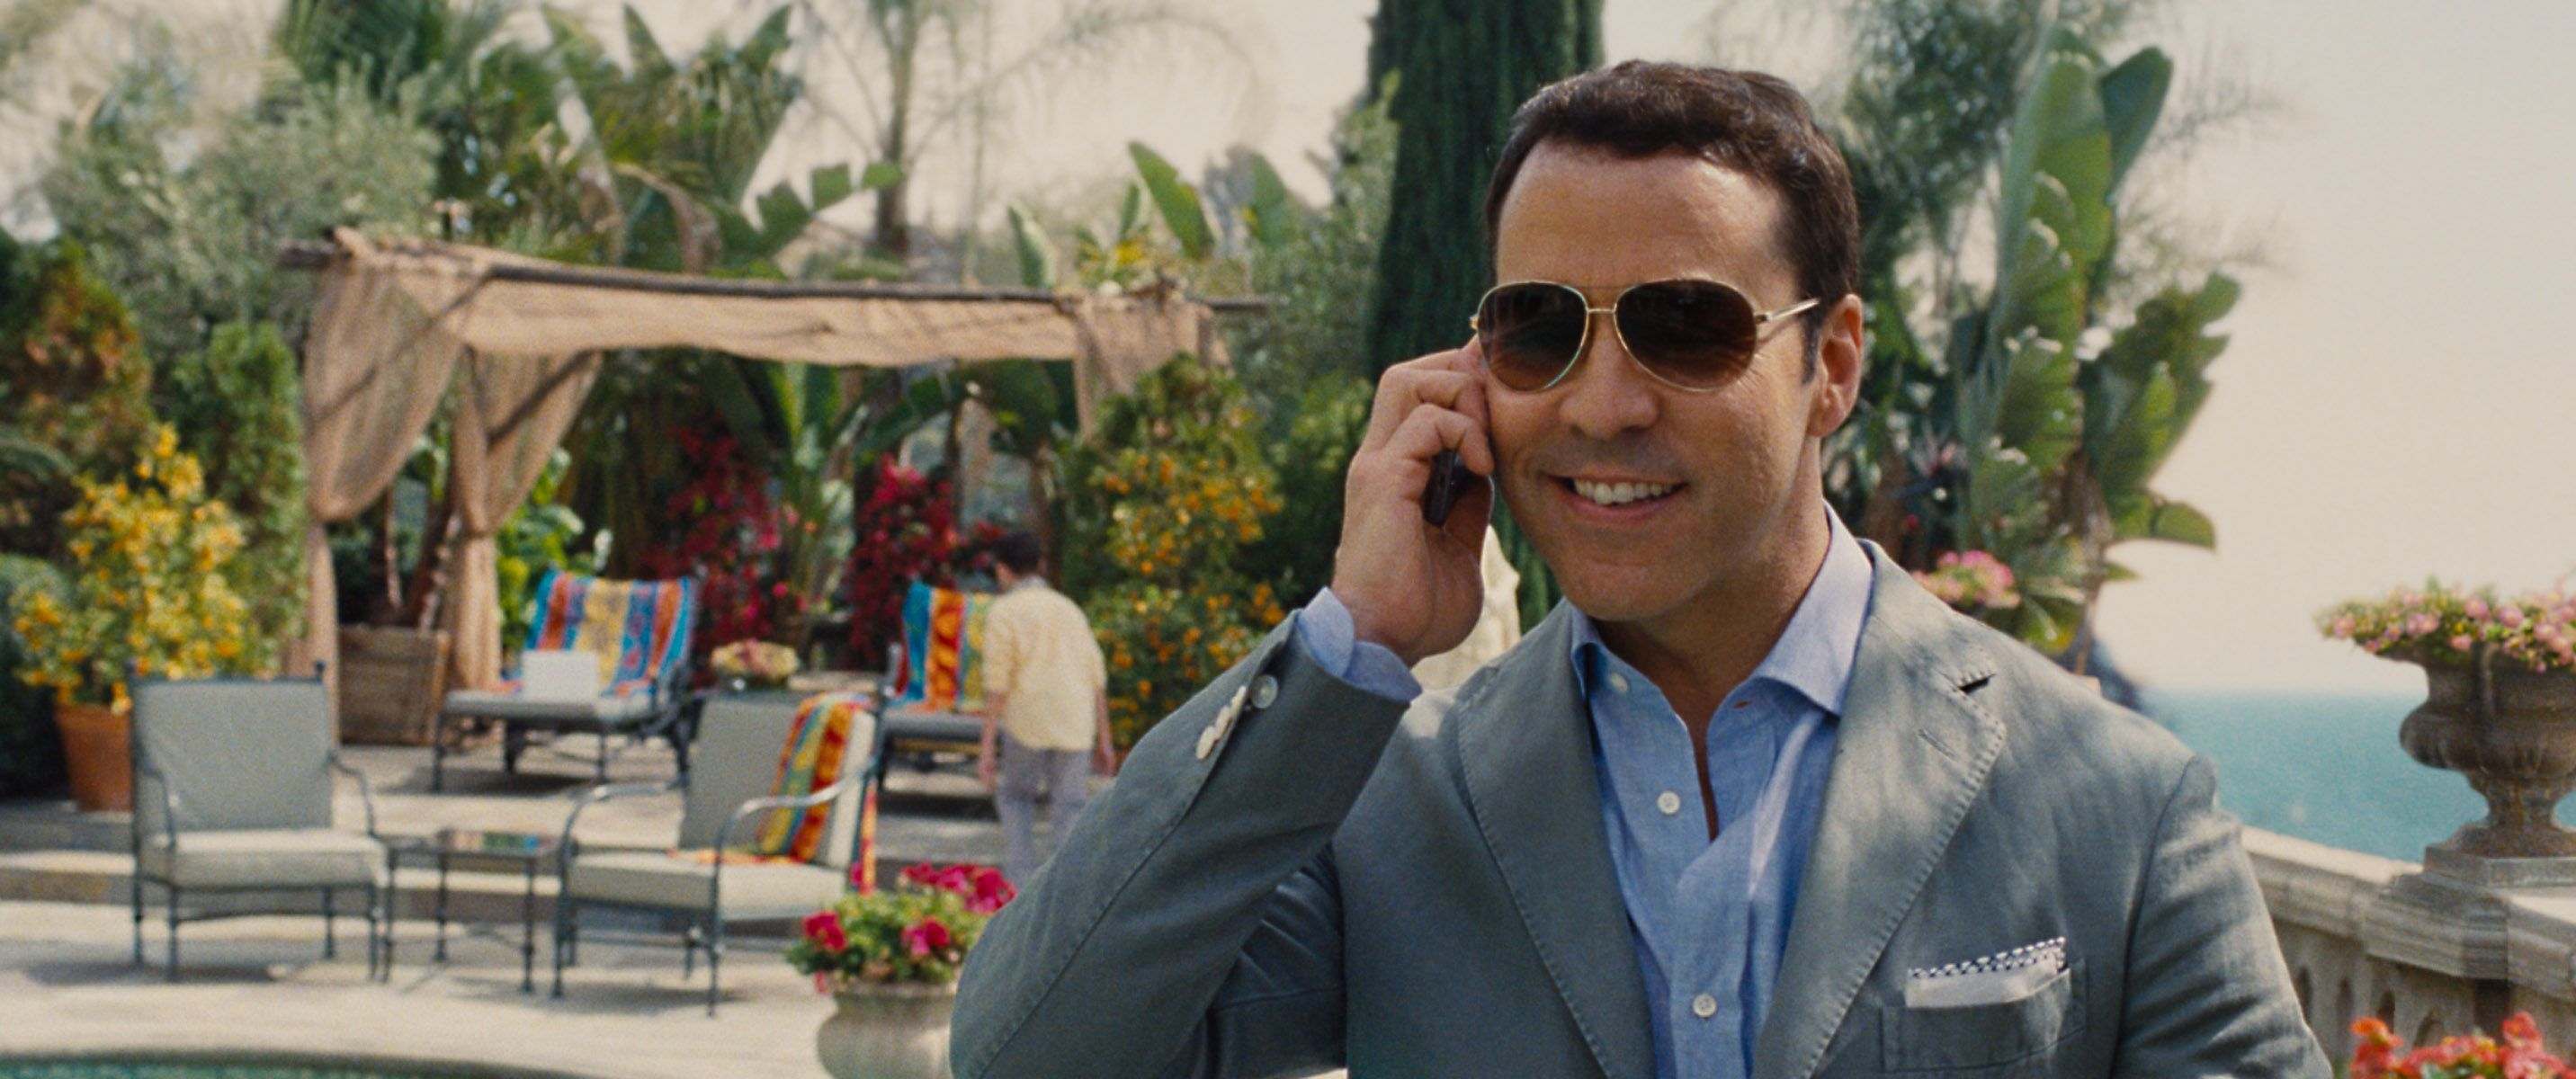 ChillBroCollider 32 New Images Are Entourage Movie Super Nvm80nw